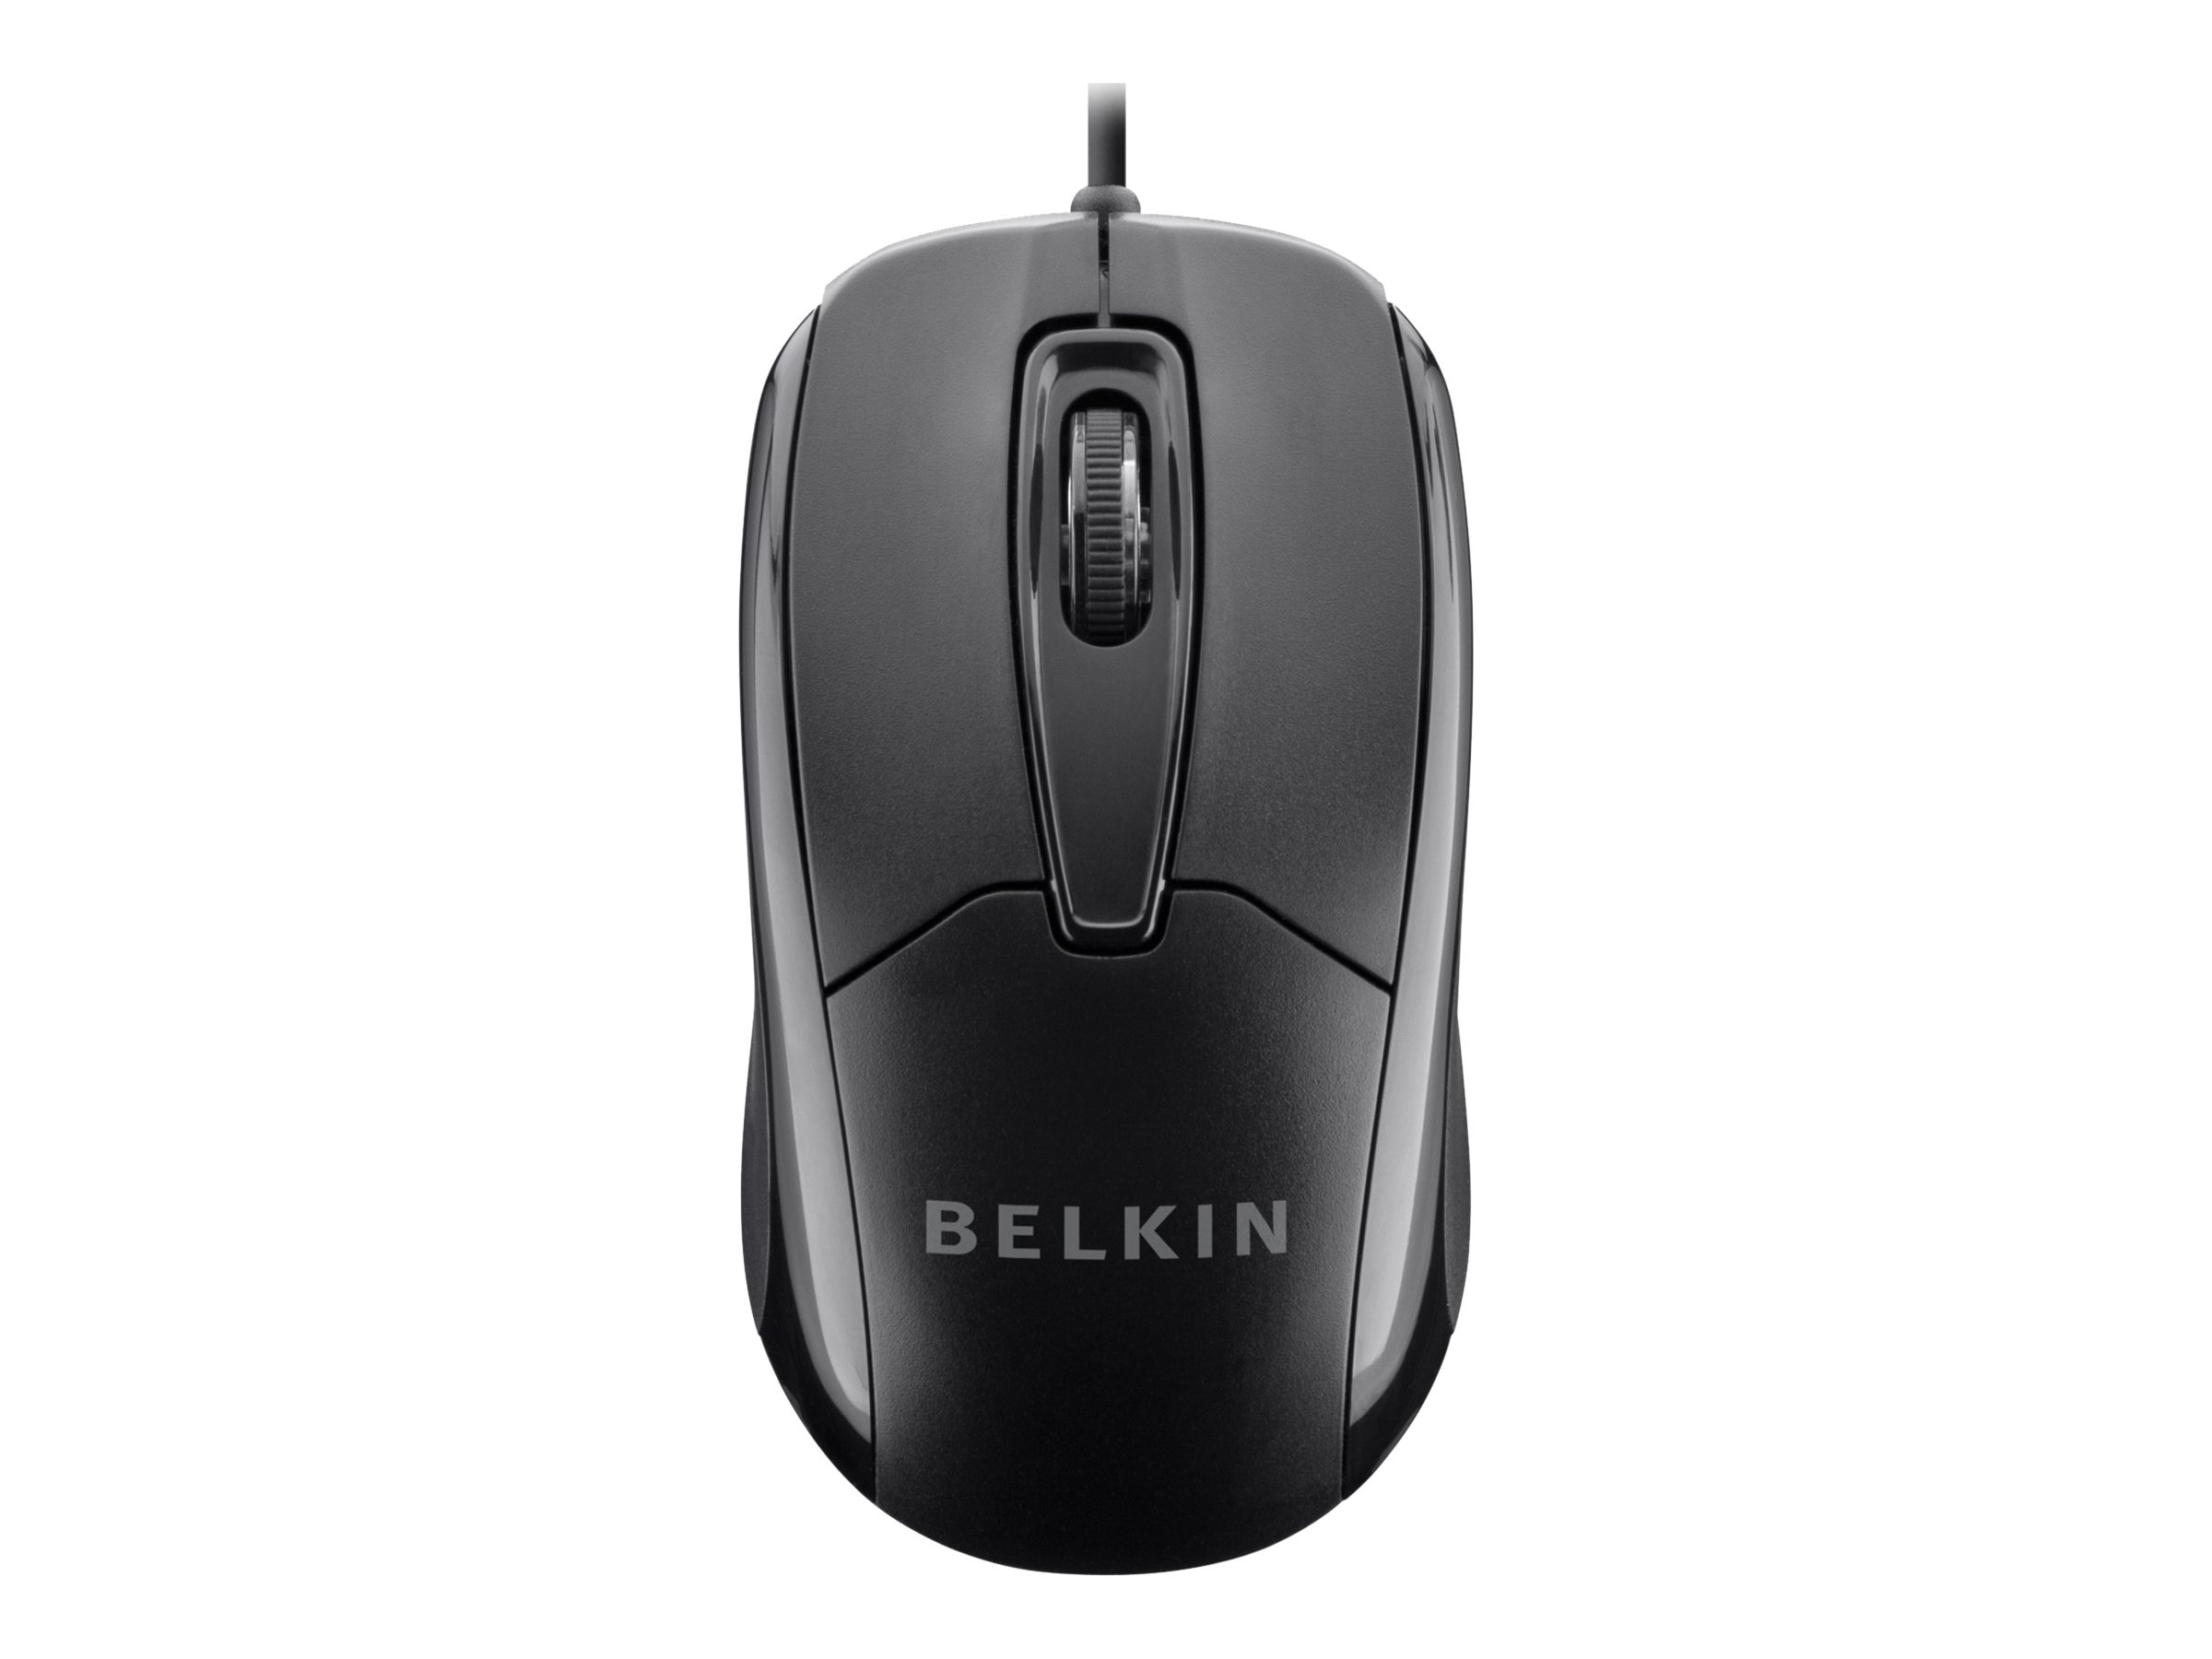 Belkin Wired Mouse Ergonomic USB PNP Black, F5M010QBLK